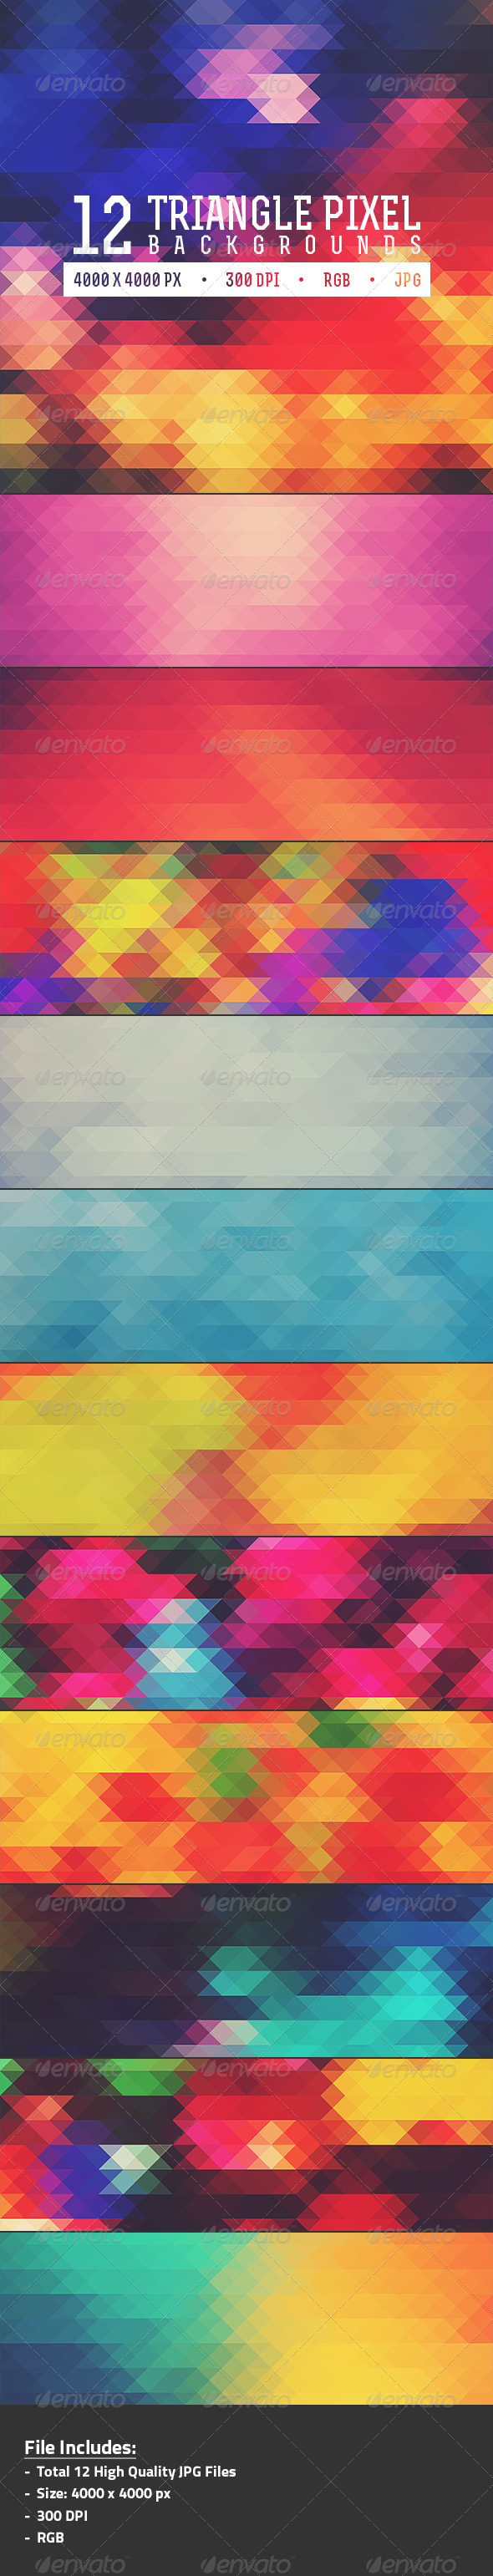 12 Triangle Pixel Backgrounds Pack 2 - Abstract Backgrounds